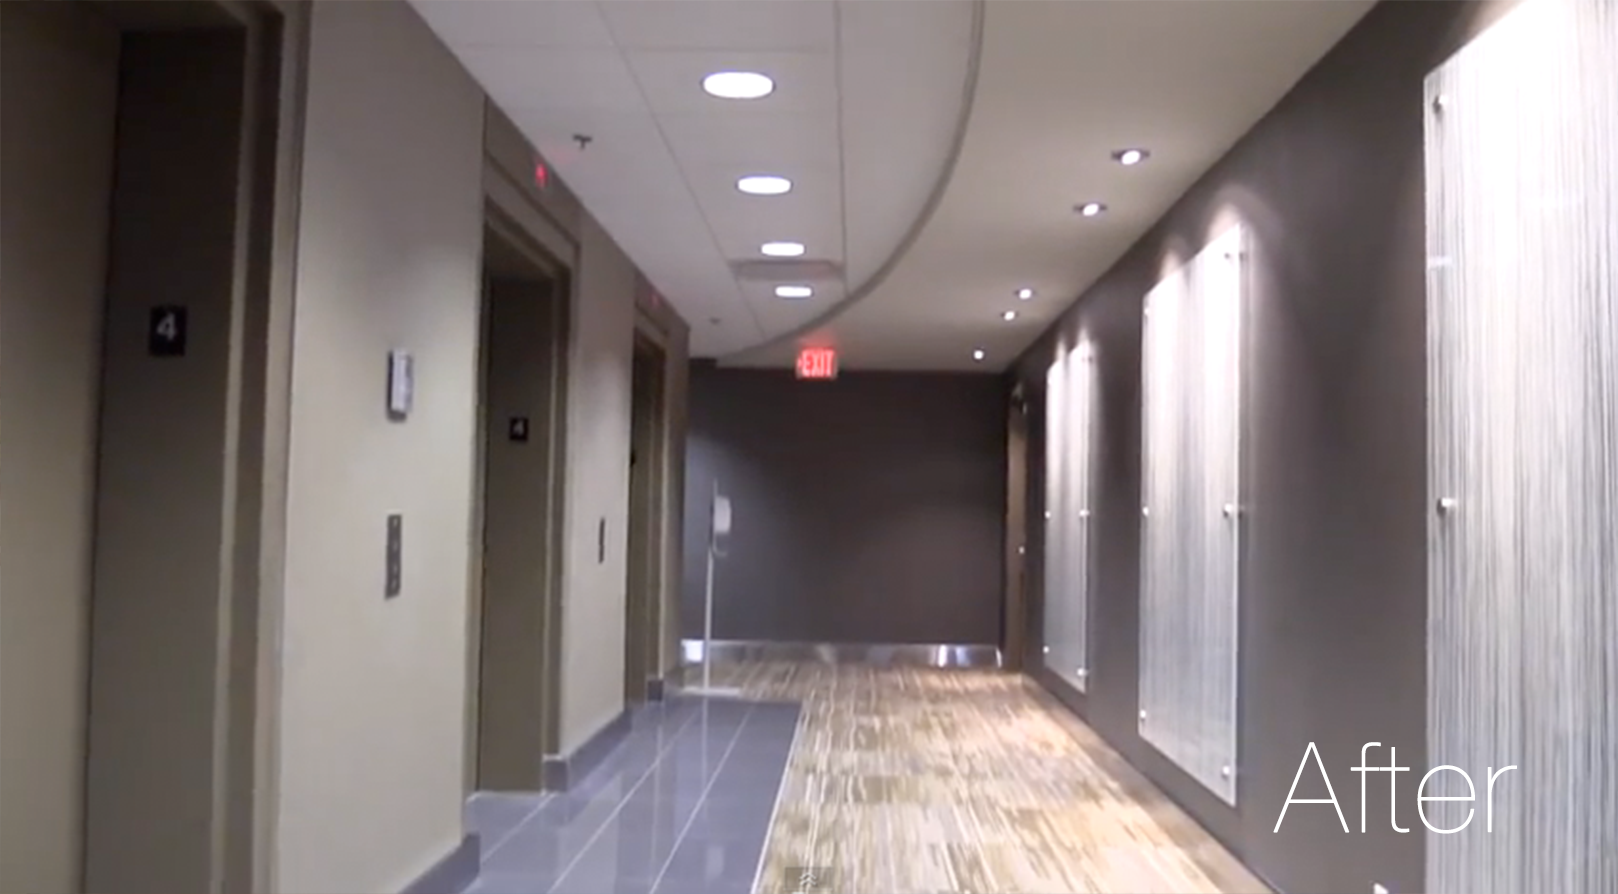 Build360_ElevatorLobby_After.png